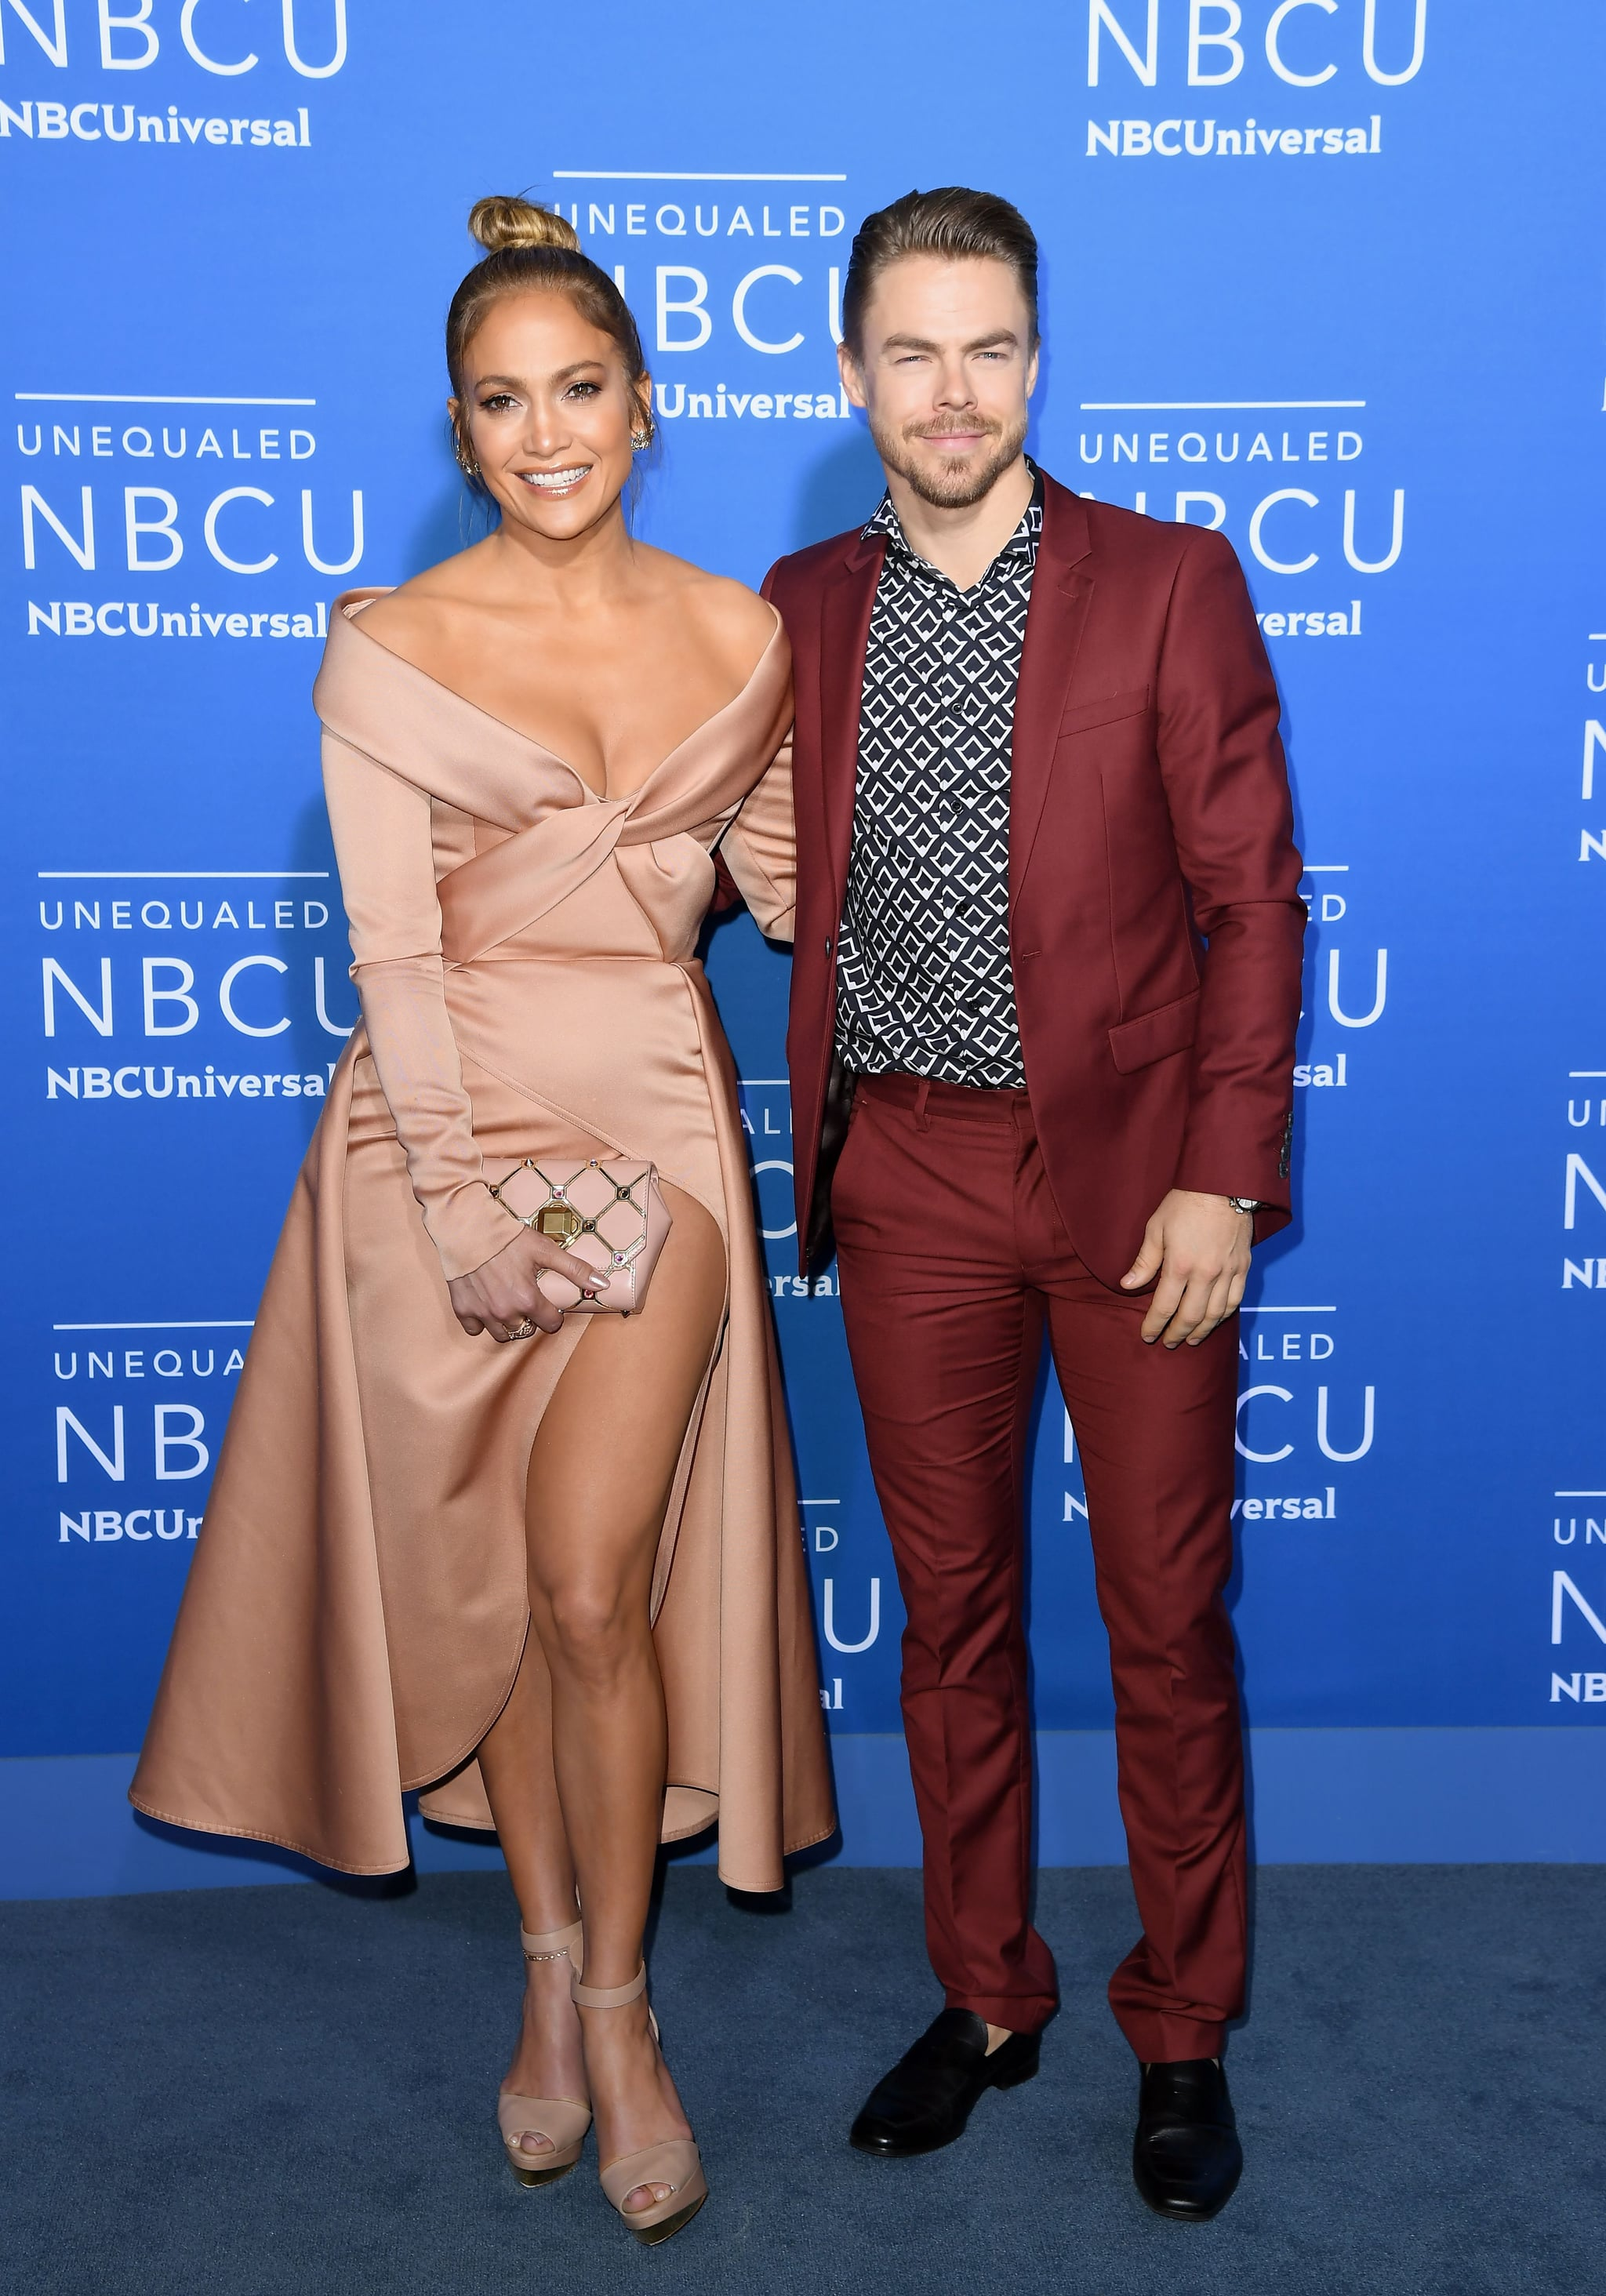 Jennifer Lopez and Derek Hough attend the NBCUniversal 2017 Upfront on May 15, 2017 in New York City.  / AFP PHOTO / ANGELA WEISS        (Photo credit should read ANGELA WEISS/AFP via Getty Images)